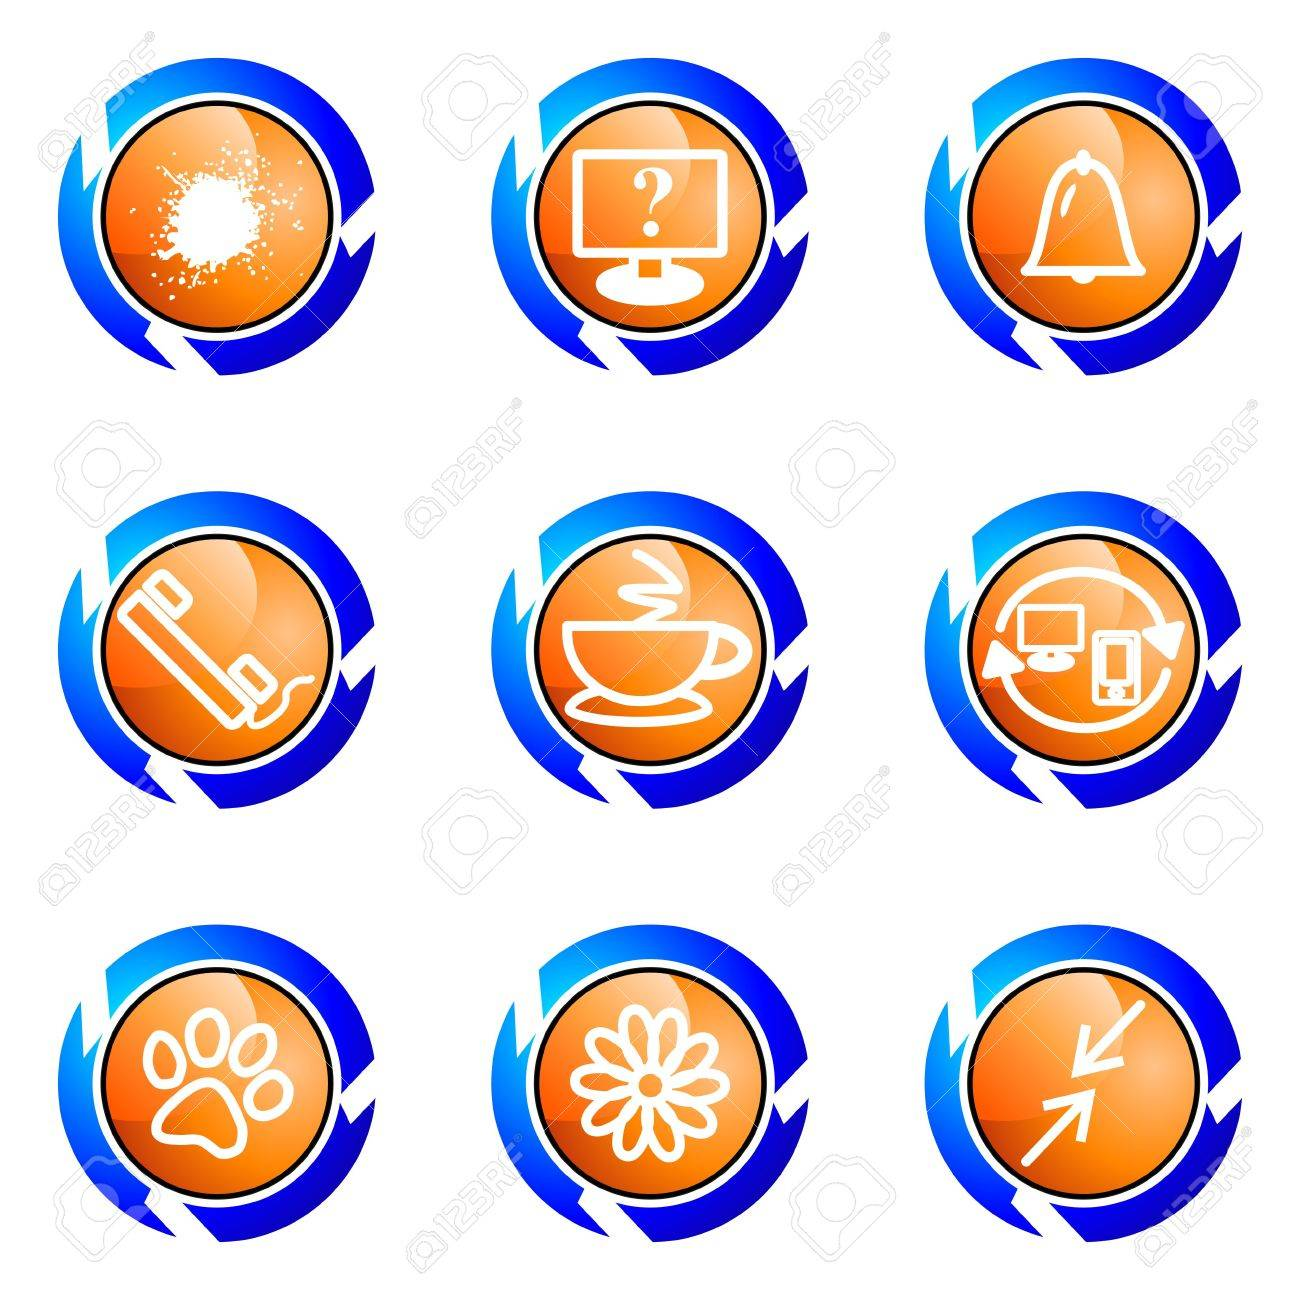 Set of 9 glossy web icons (set 26). Isolated button in various color. Stock Vector - 16682378